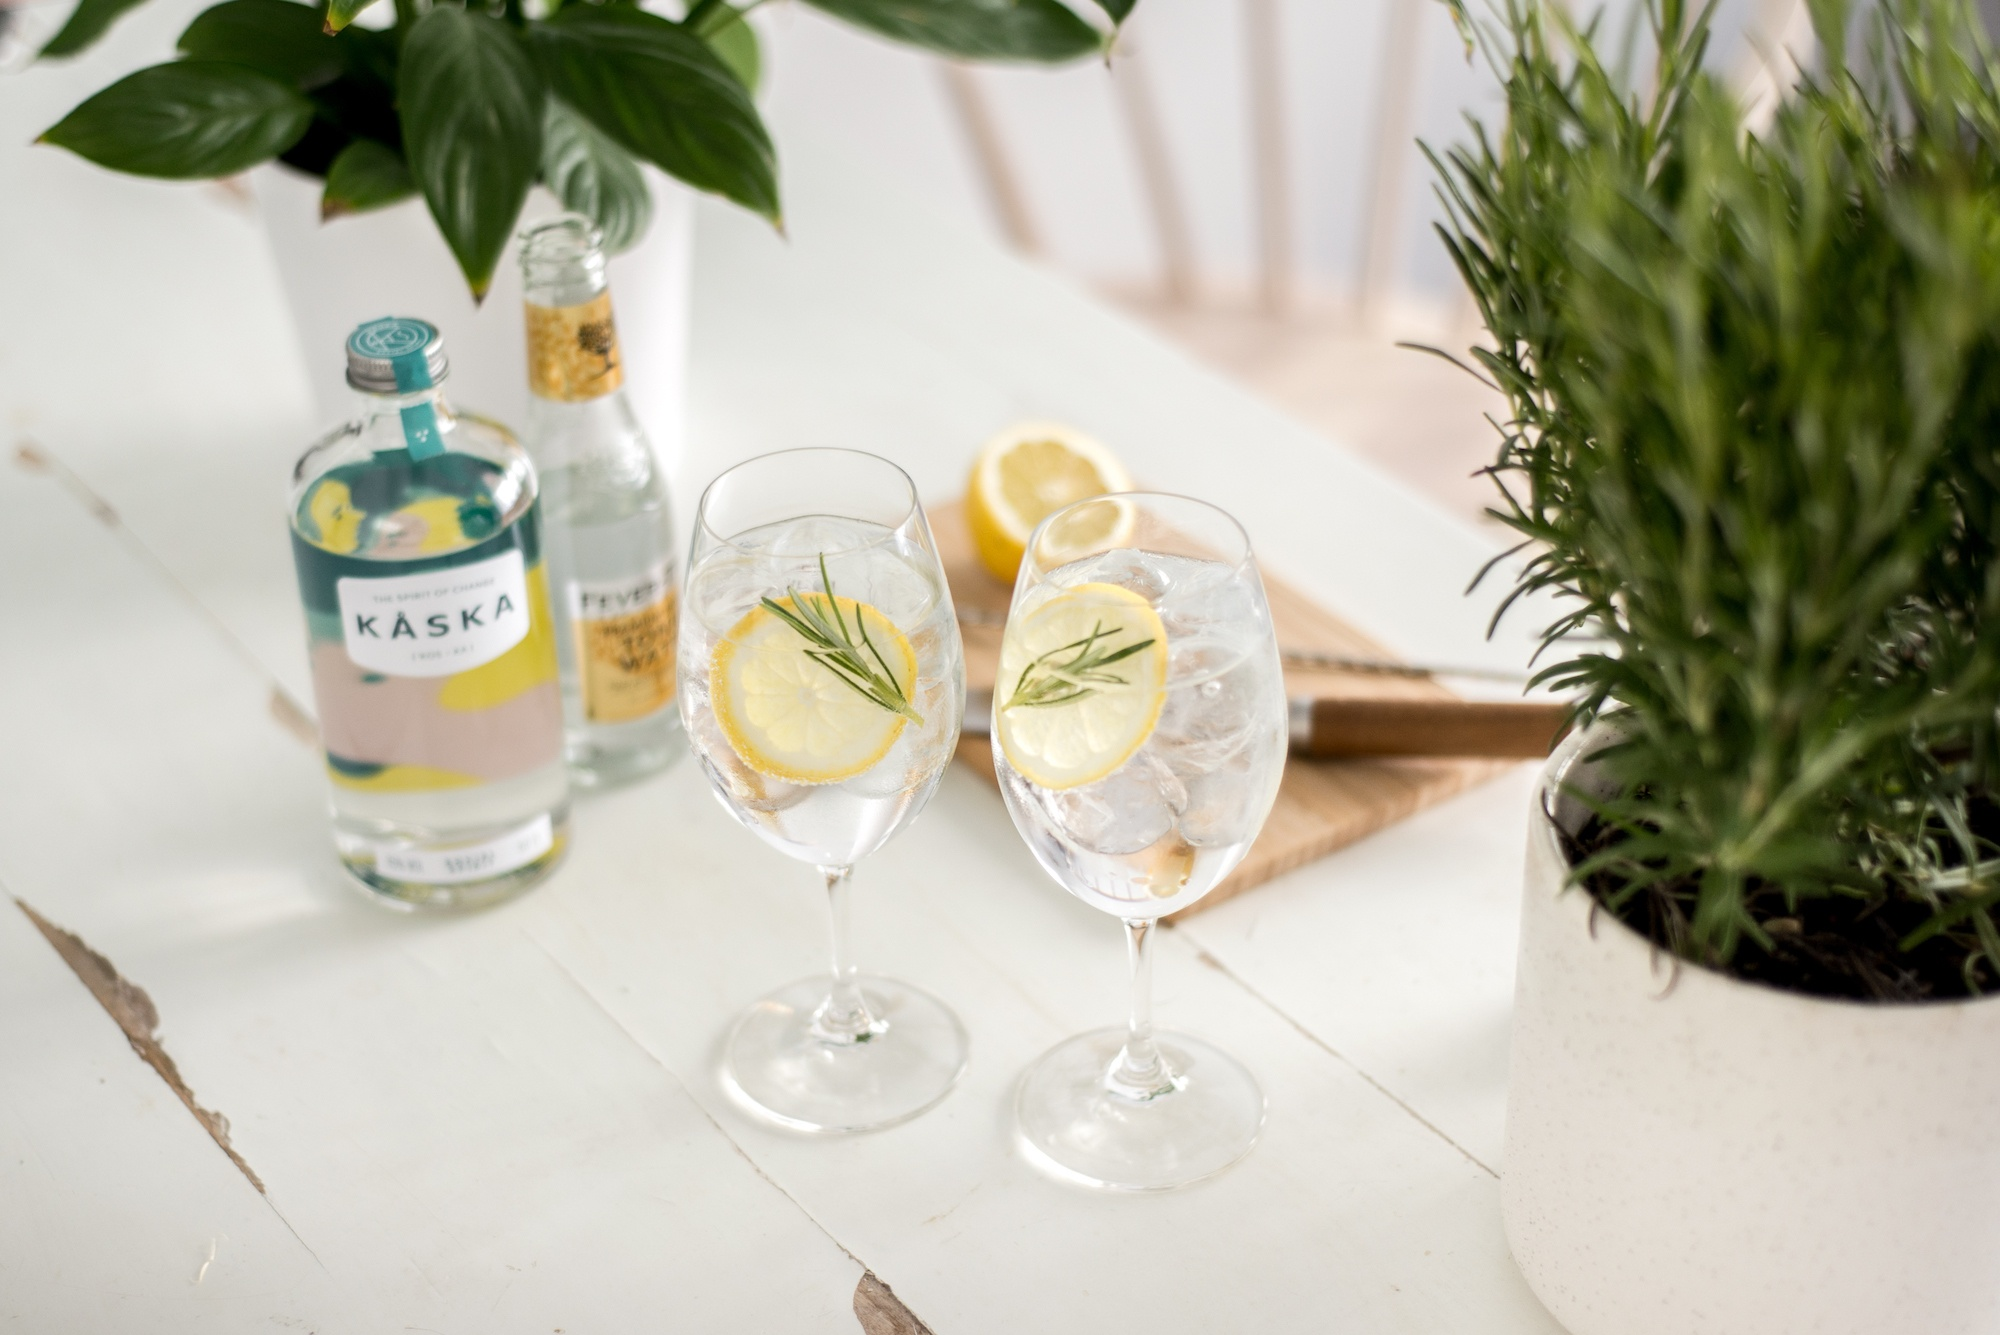 Sold Out In Hours – Brand New Finnish Light Spirit Kåska Makes A Dashing Debut